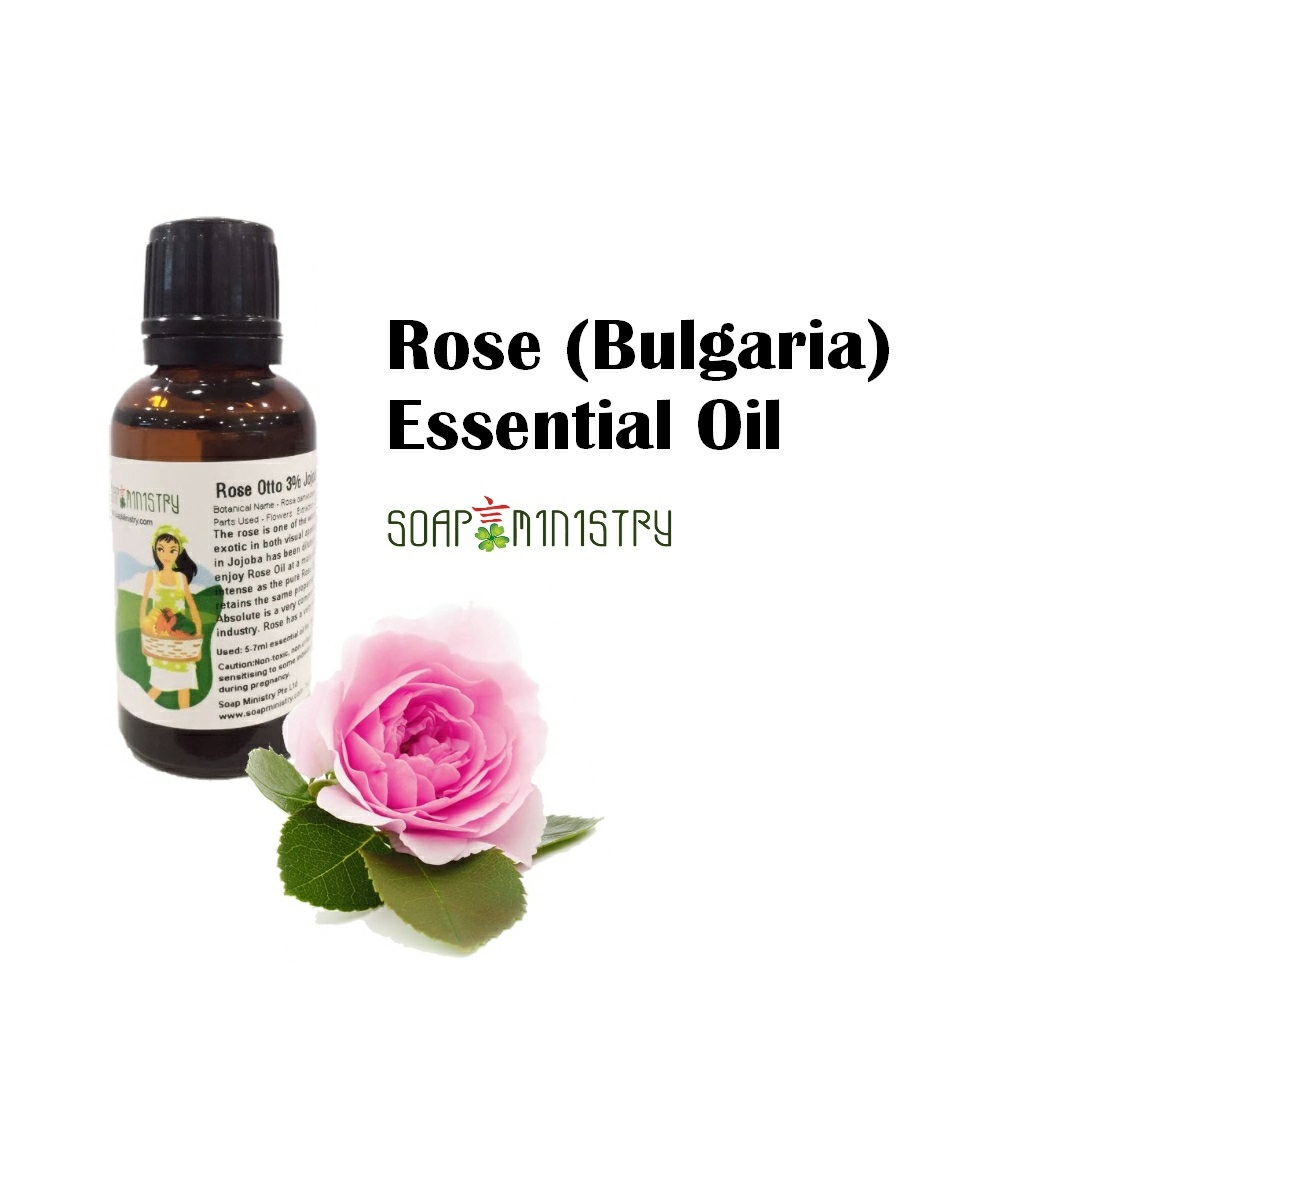 Rose Otto 3% Jojoba Essential Oil 50ml